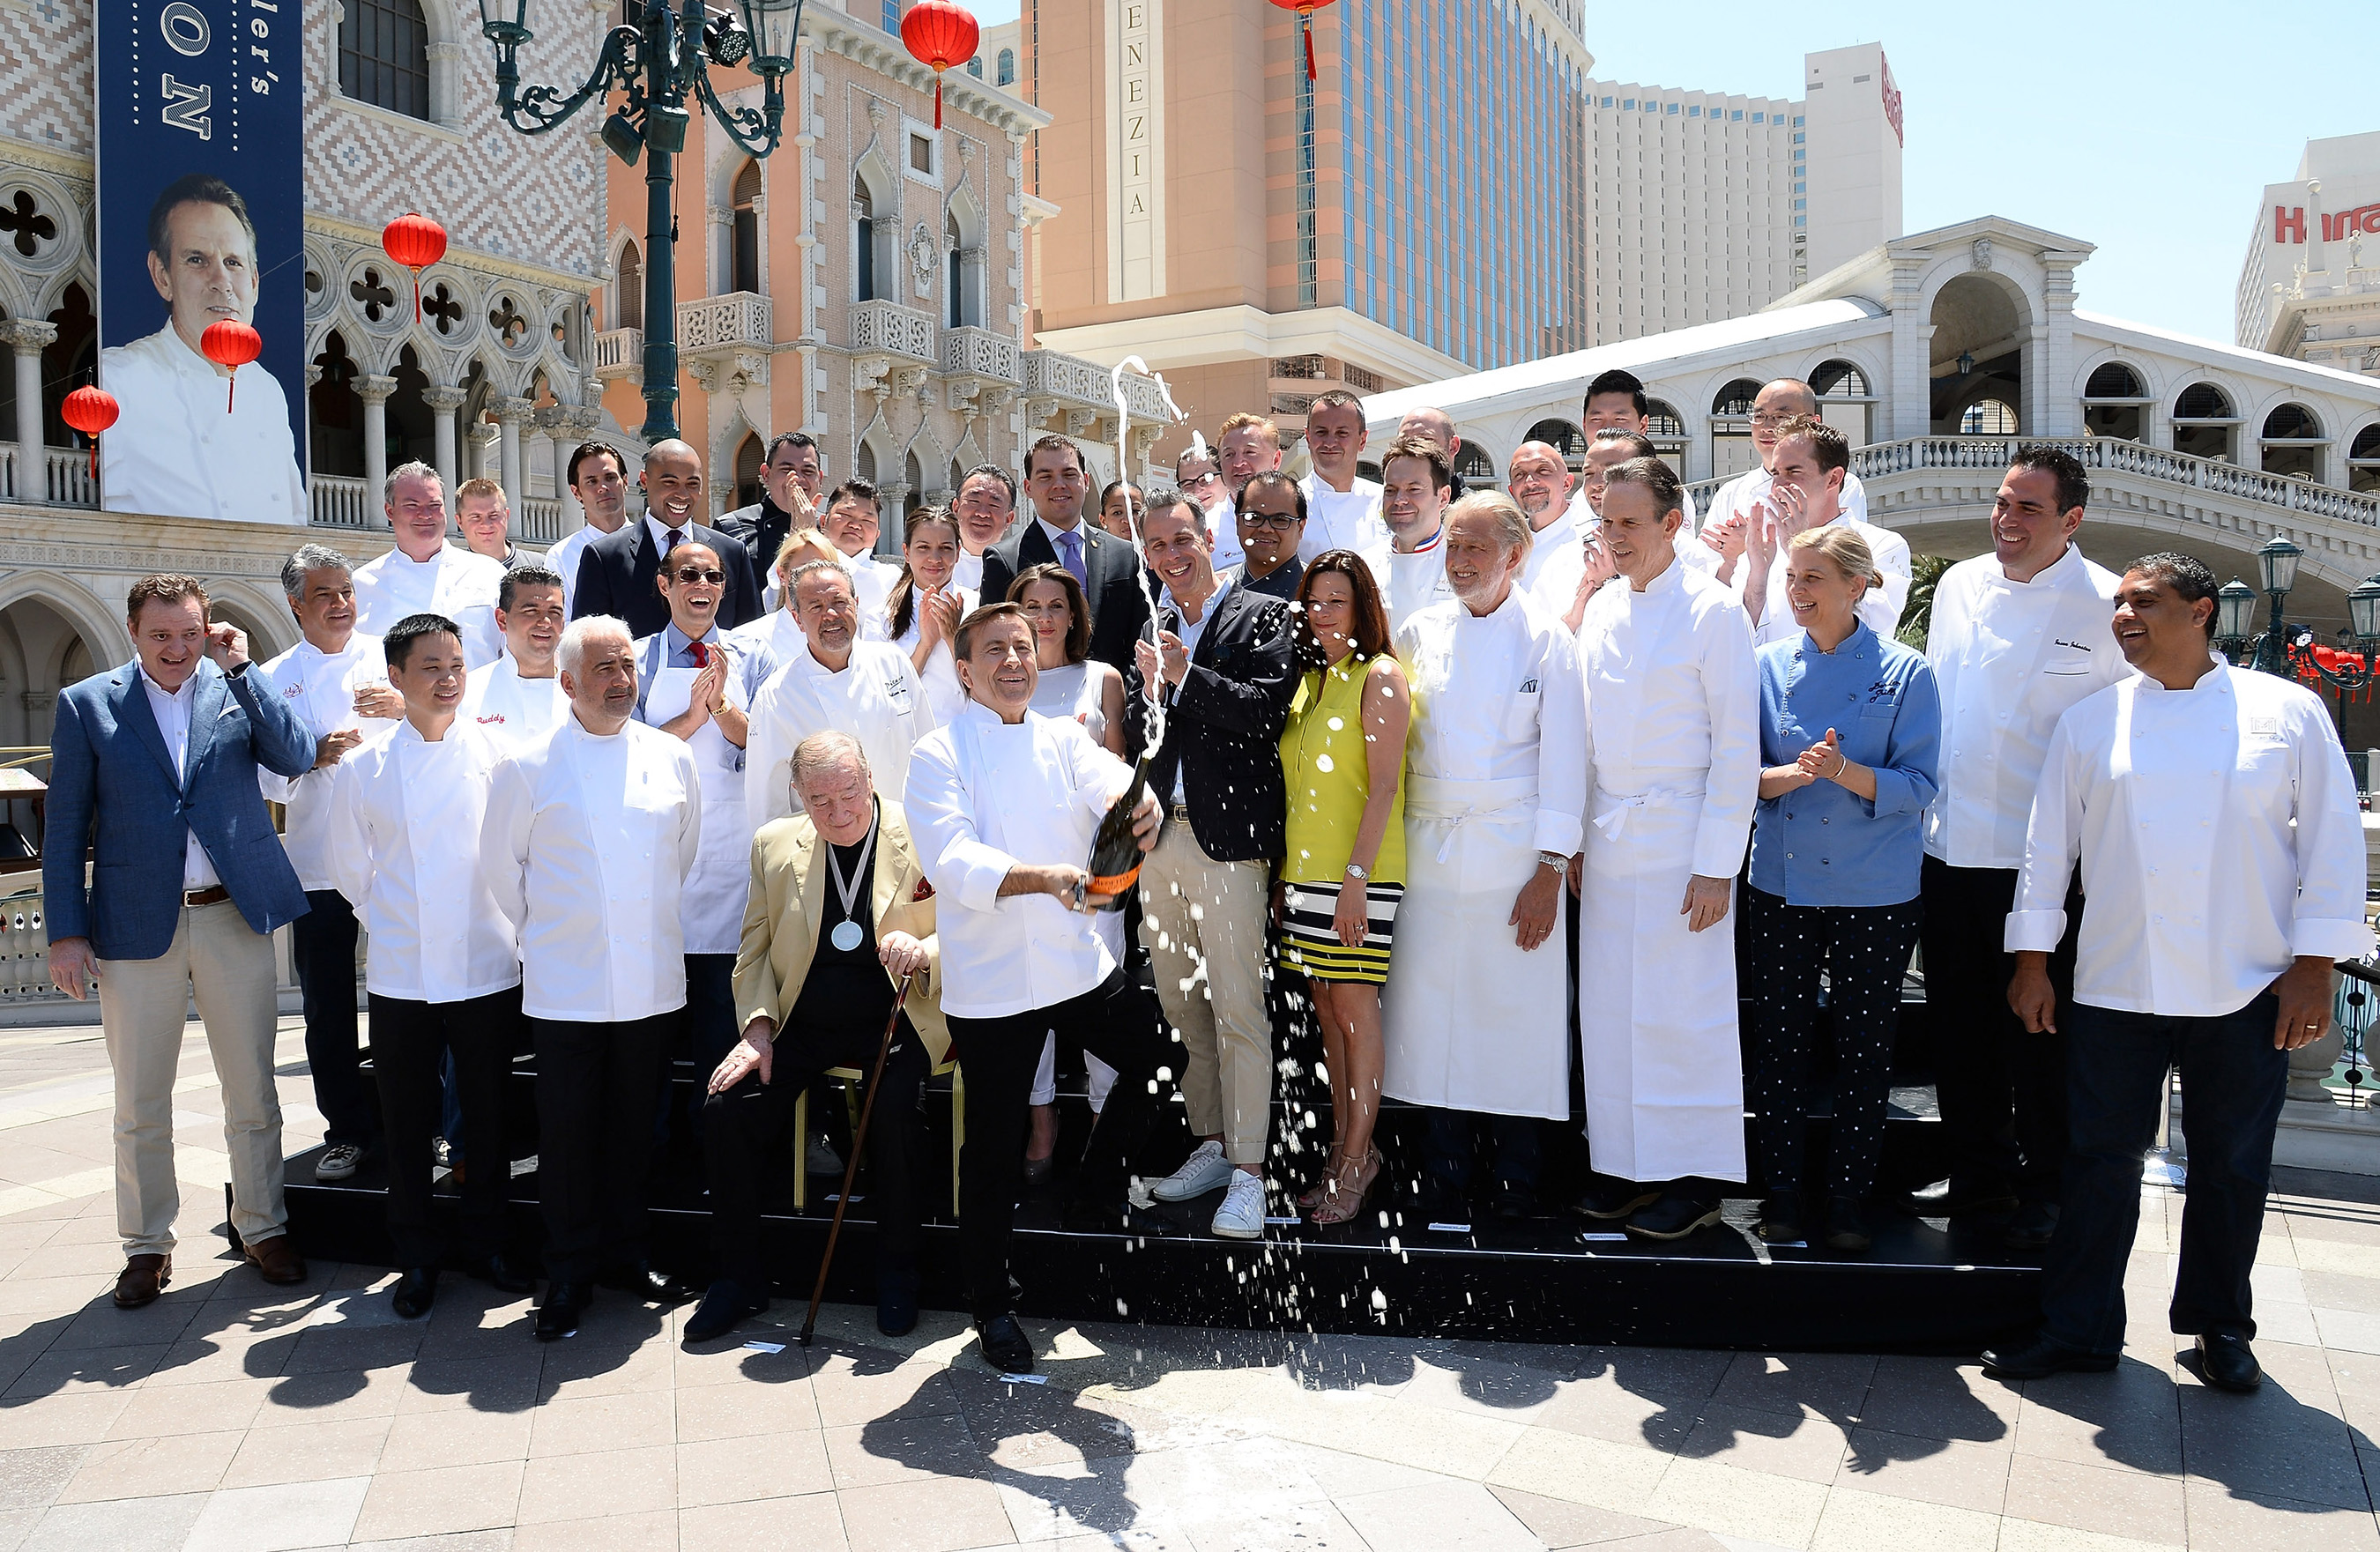 Chef Daniel Boulud marks the beginning of the eighth annual Vegas Uncork'd by Bon Appetit culinary festival, featuring chefs from Aria, the Bellagio, Caesars Palace, the MGM Grand and The Venetian, with a ceremonial Mionetto Prosecco saber-off in front of The Venetian Las Vegas on May 8, 2014 in Las Vegas, Nevada. (Photo by Ethan Miller/Getty Images for Vegas Uncork'd by Bon Appetit)